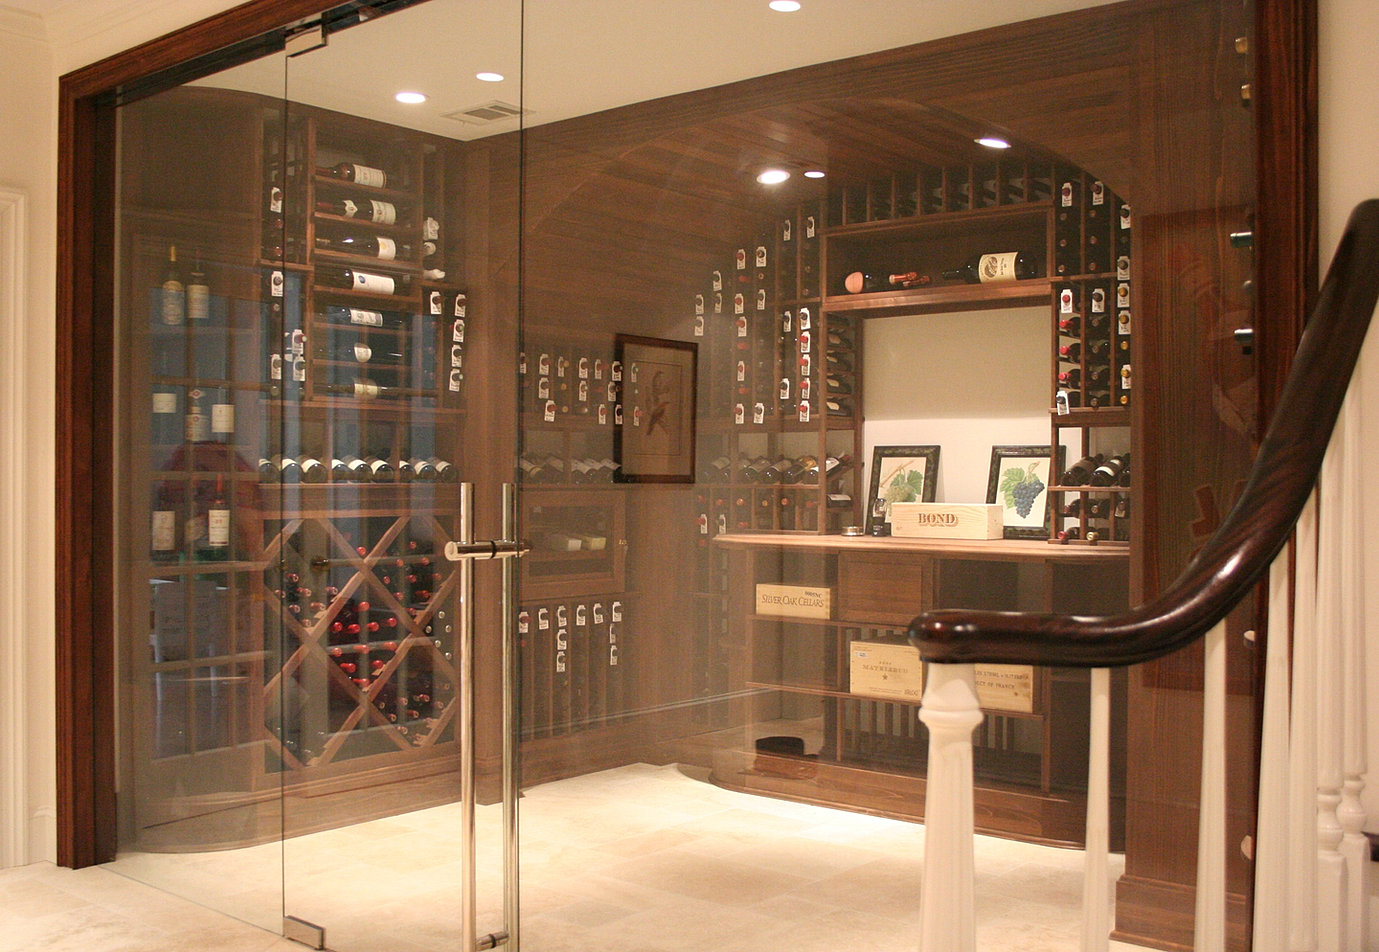 Glass enclosed wine cellar - We Have Spent Extensive Time To Research The Optimal Installation For An All Glass Wine Door Or Cellar With A Glass Enclosed Wine Room Or Cellar You Can